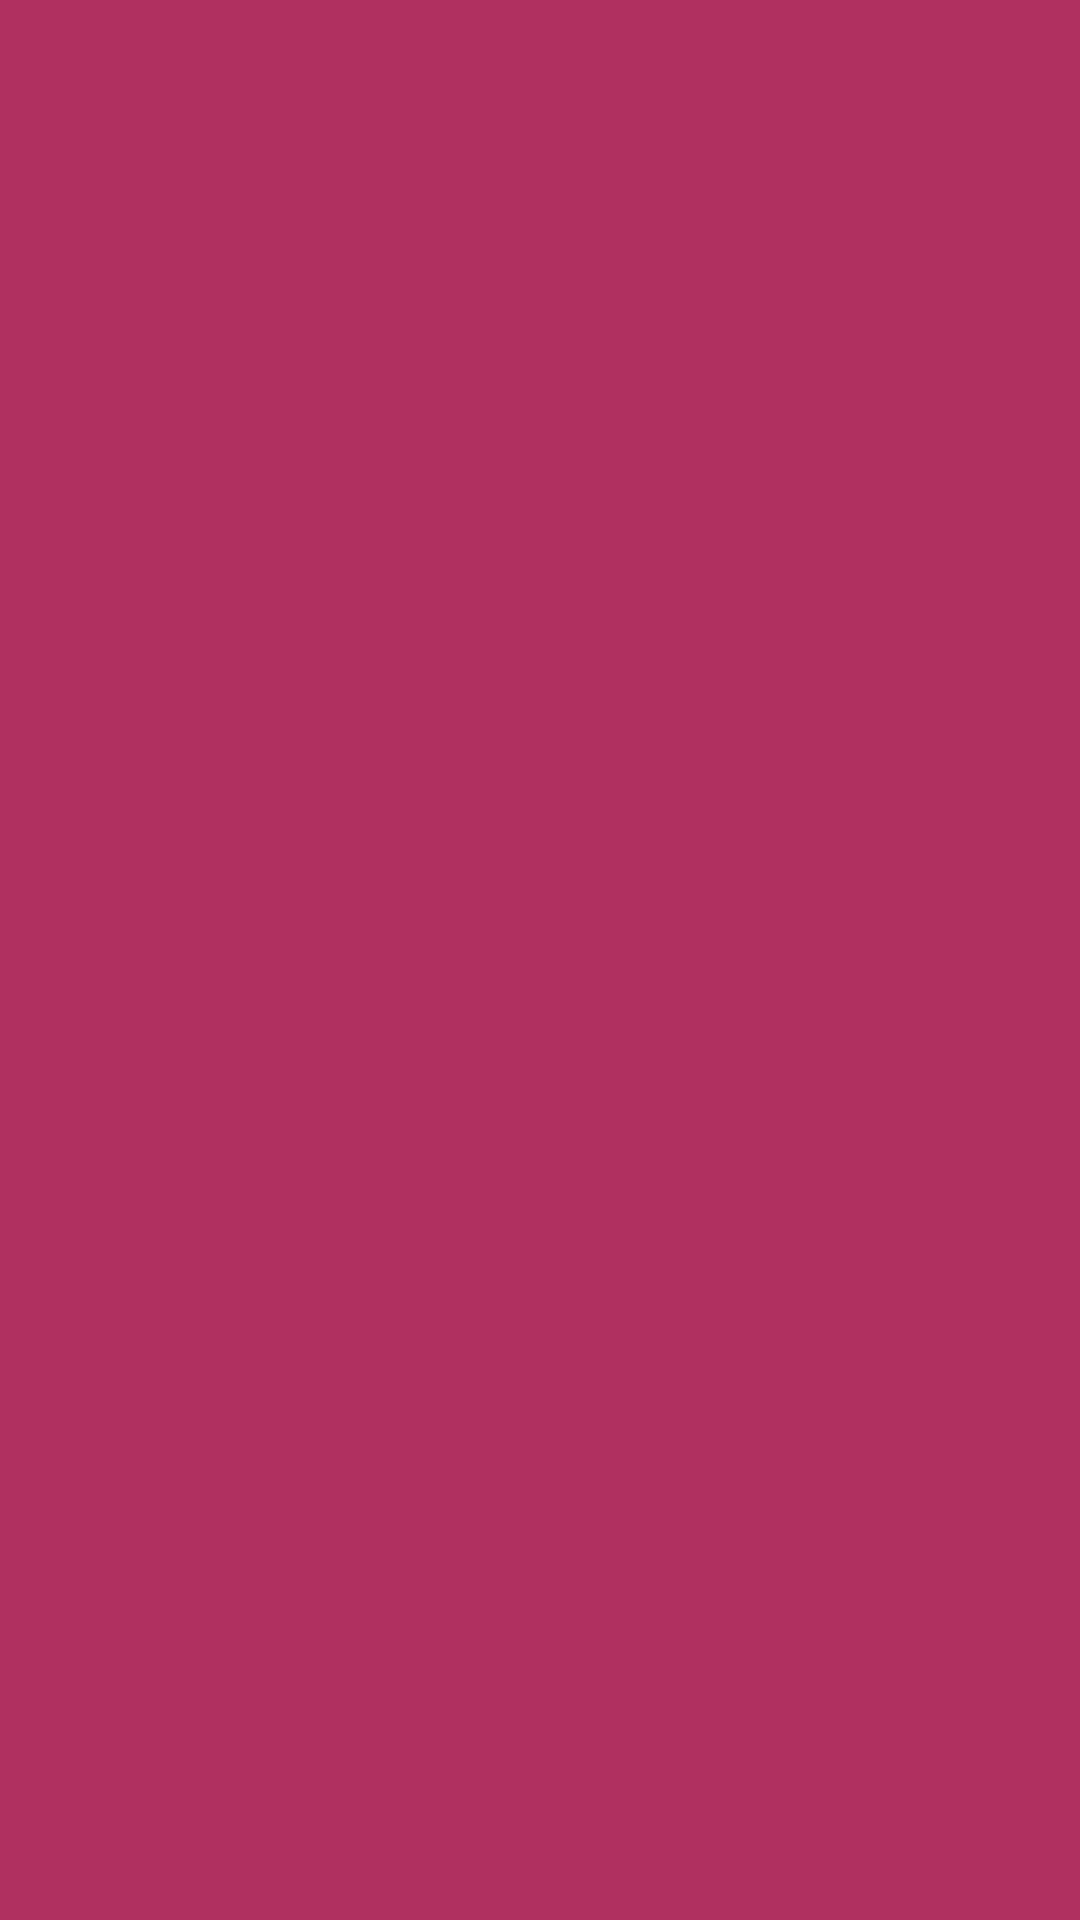 1080x1920 Rich Maroon Solid Color Background